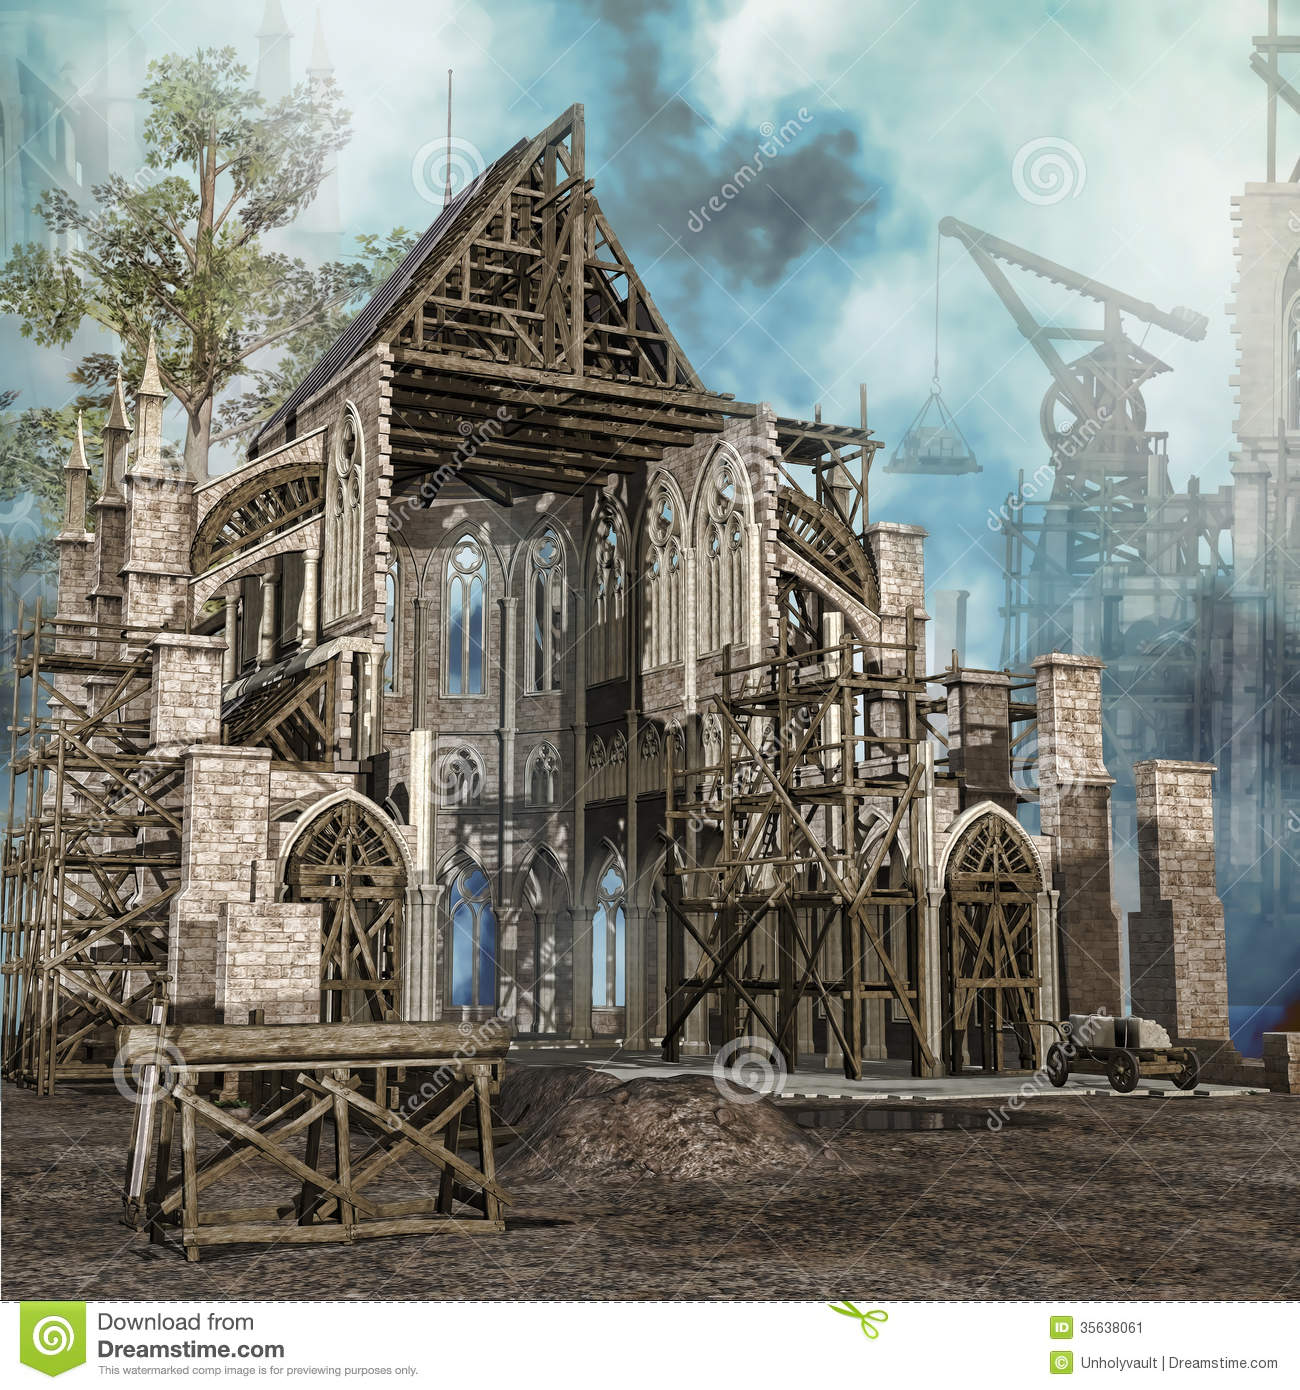 Medieval Cathedral In Construction Stock Image - Image: 35638061